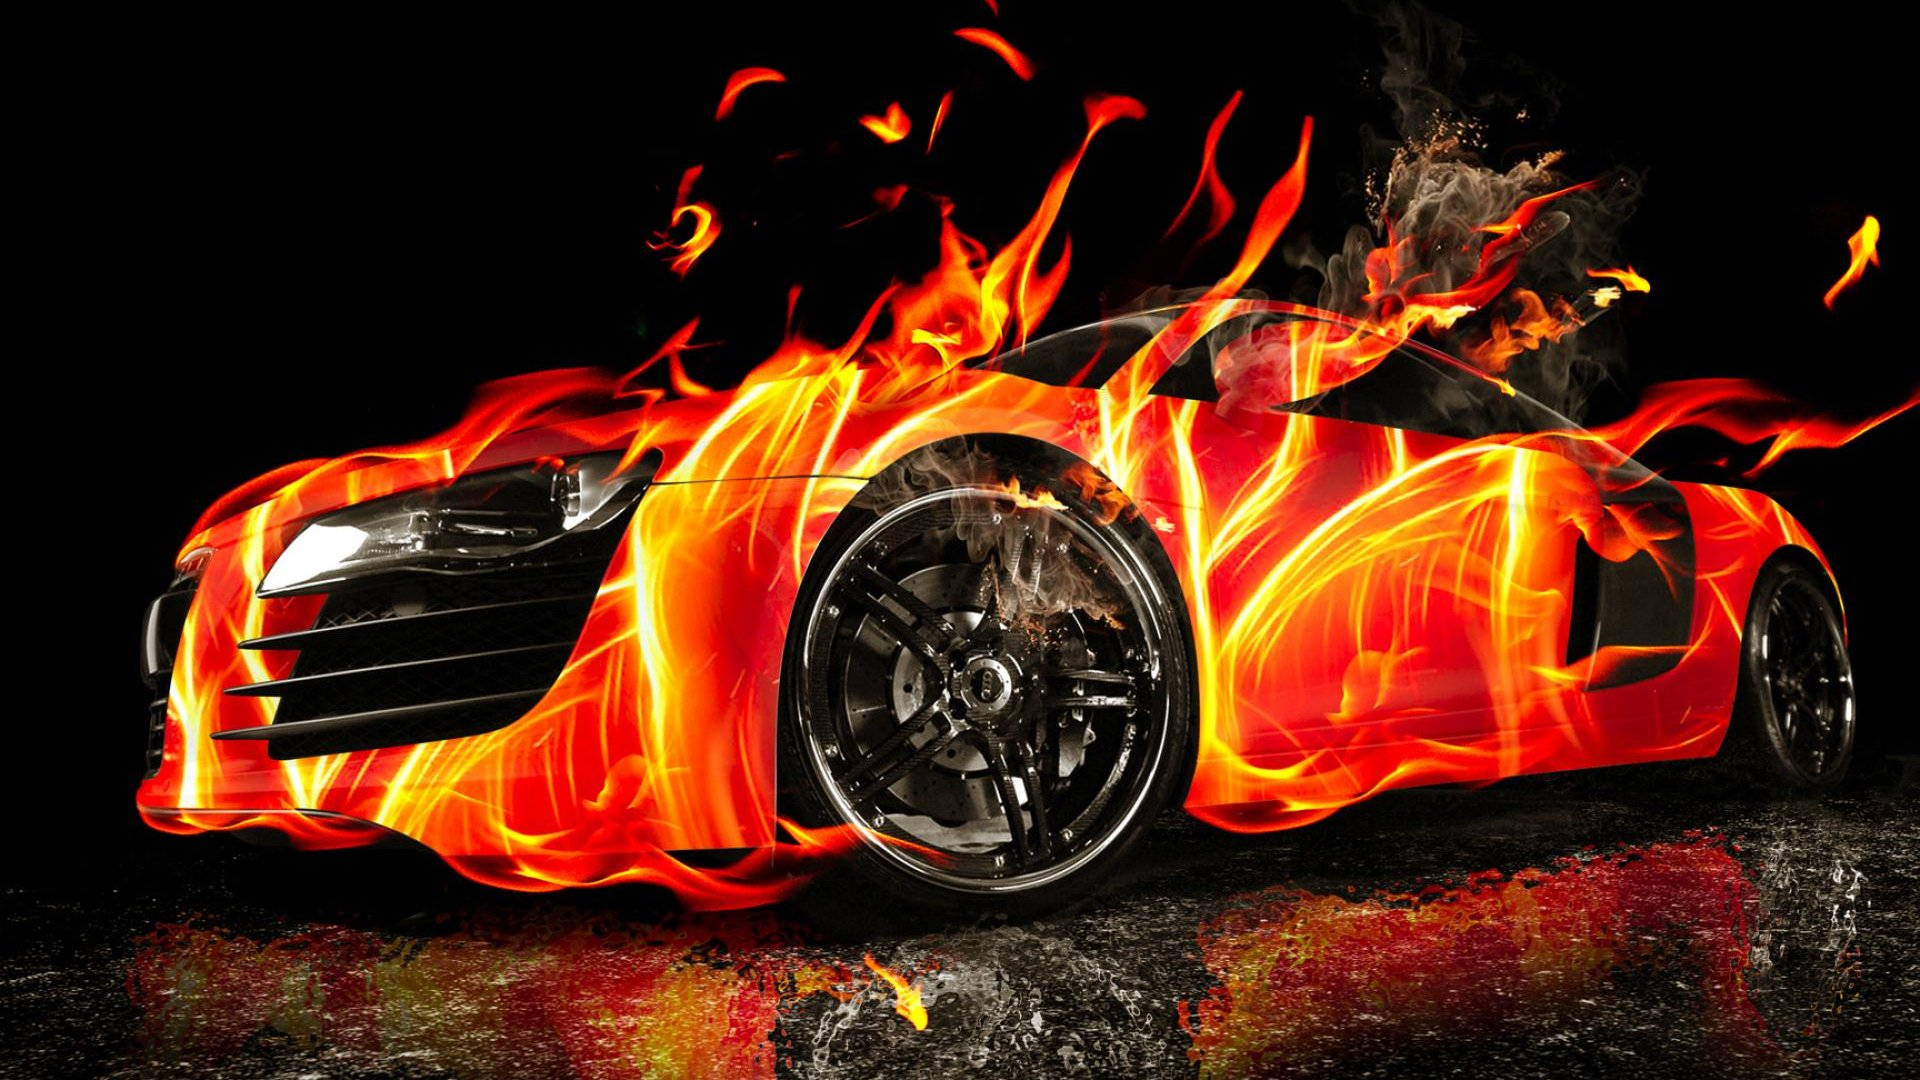 3d Car On Fire Hd Wallpaper Hd Latest Wallpapers